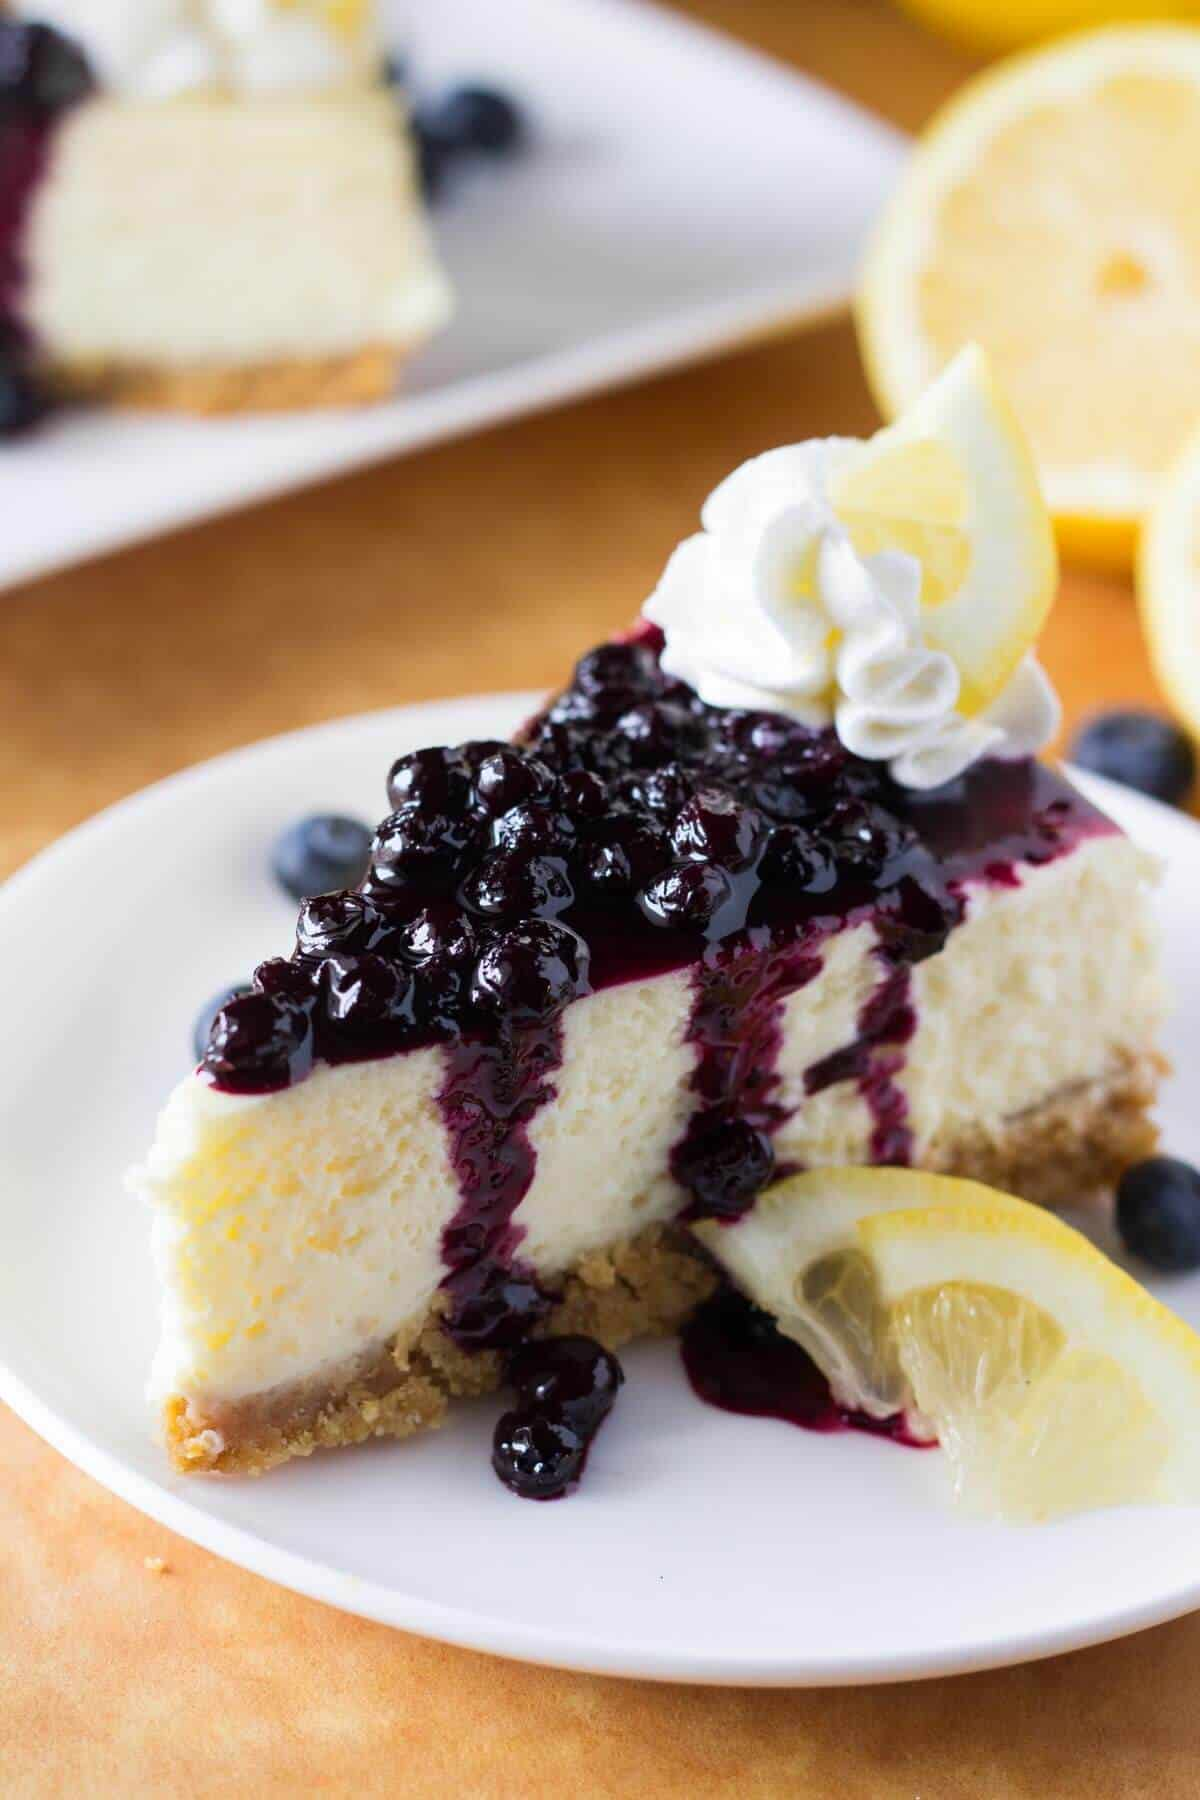 Lemon Cheesecake With Blueberry Compote Just So Tasty